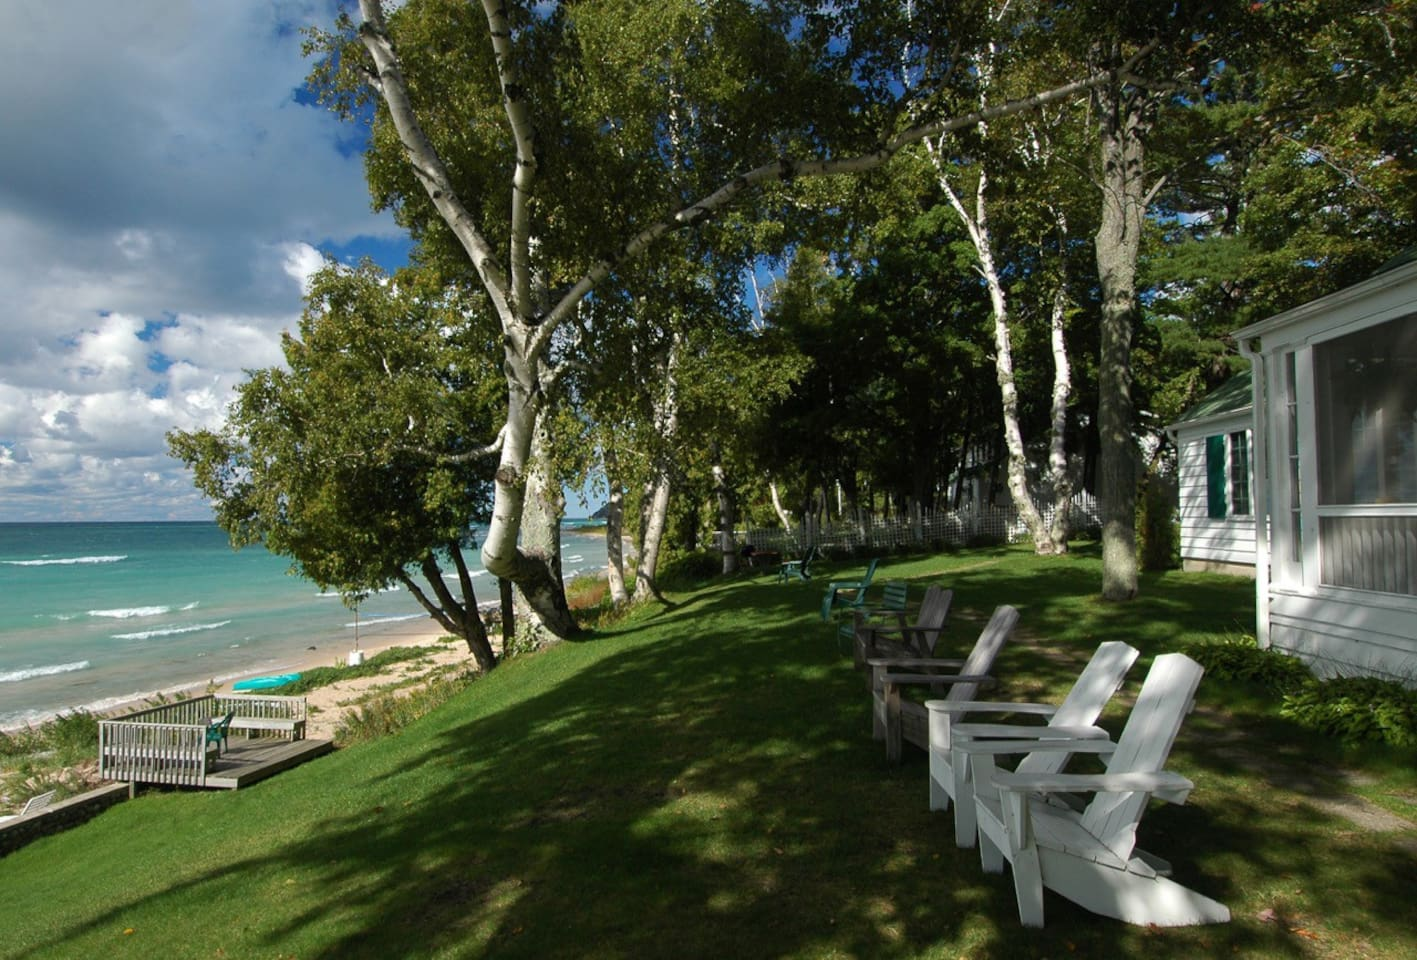 A sunny afternoon on Lake Michigan at The Jolli-Lodge